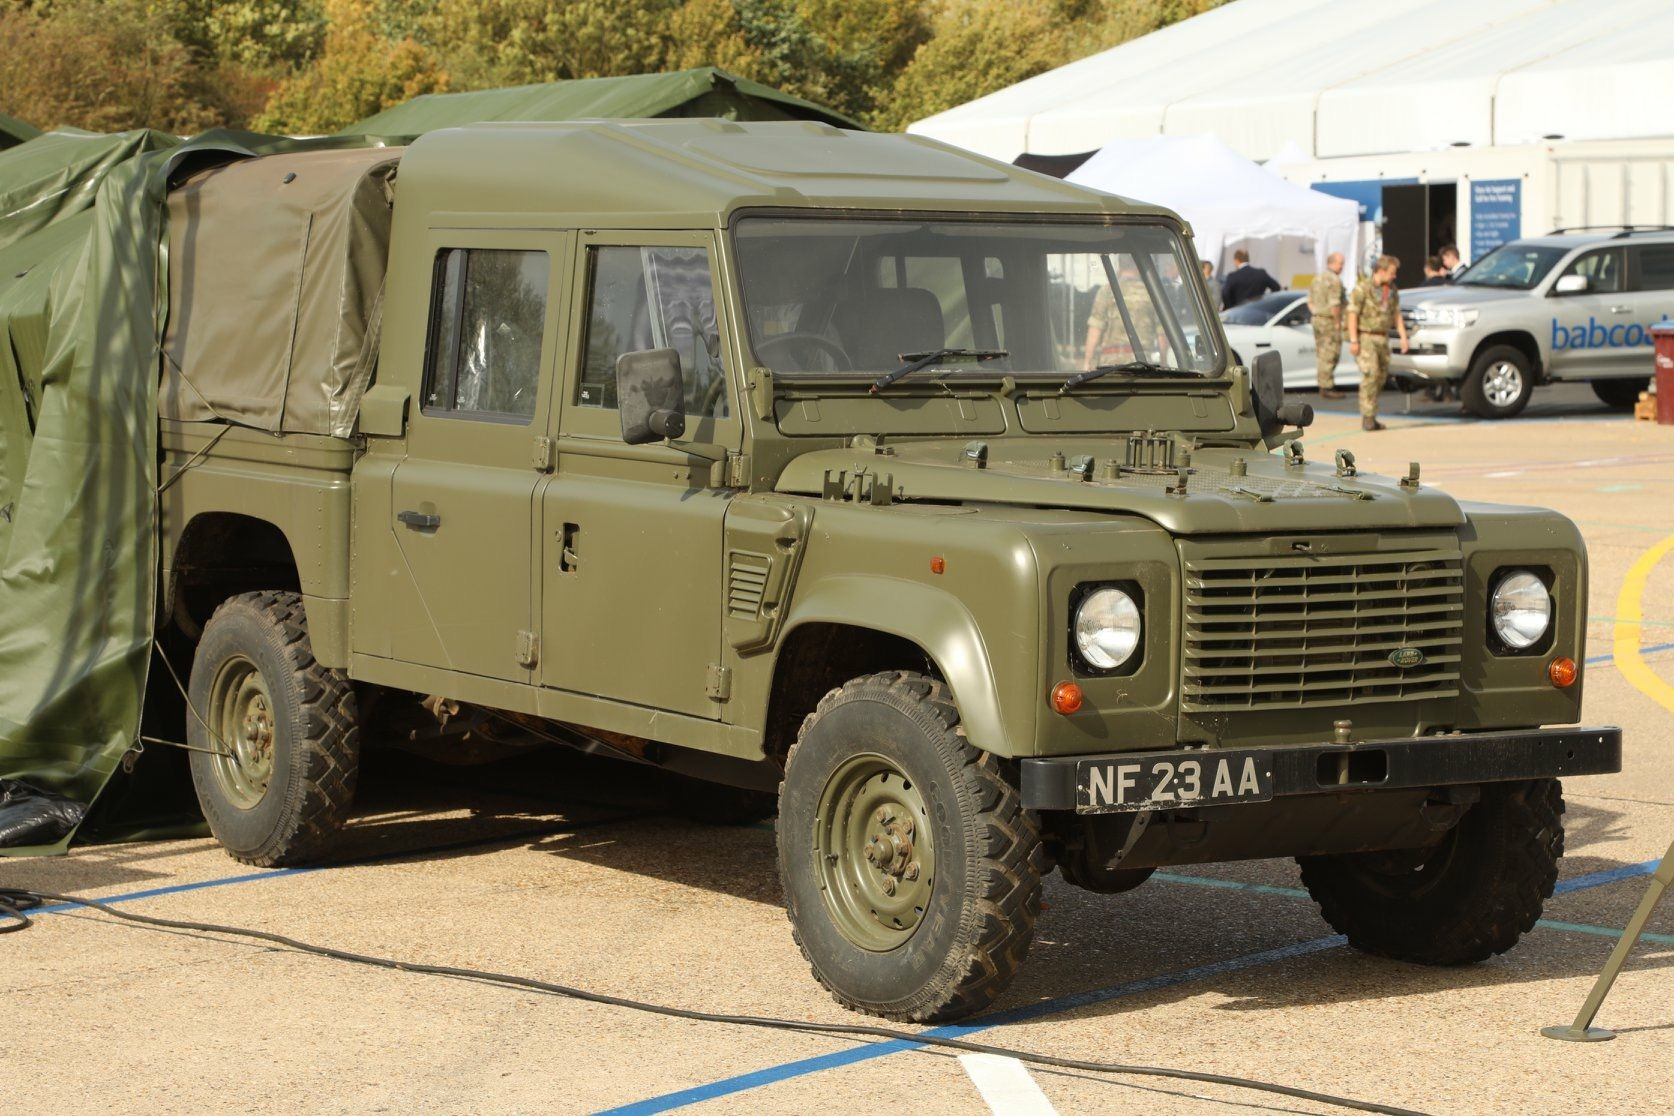 Double Cab Military Defender Land Rover Expedition Vehicle